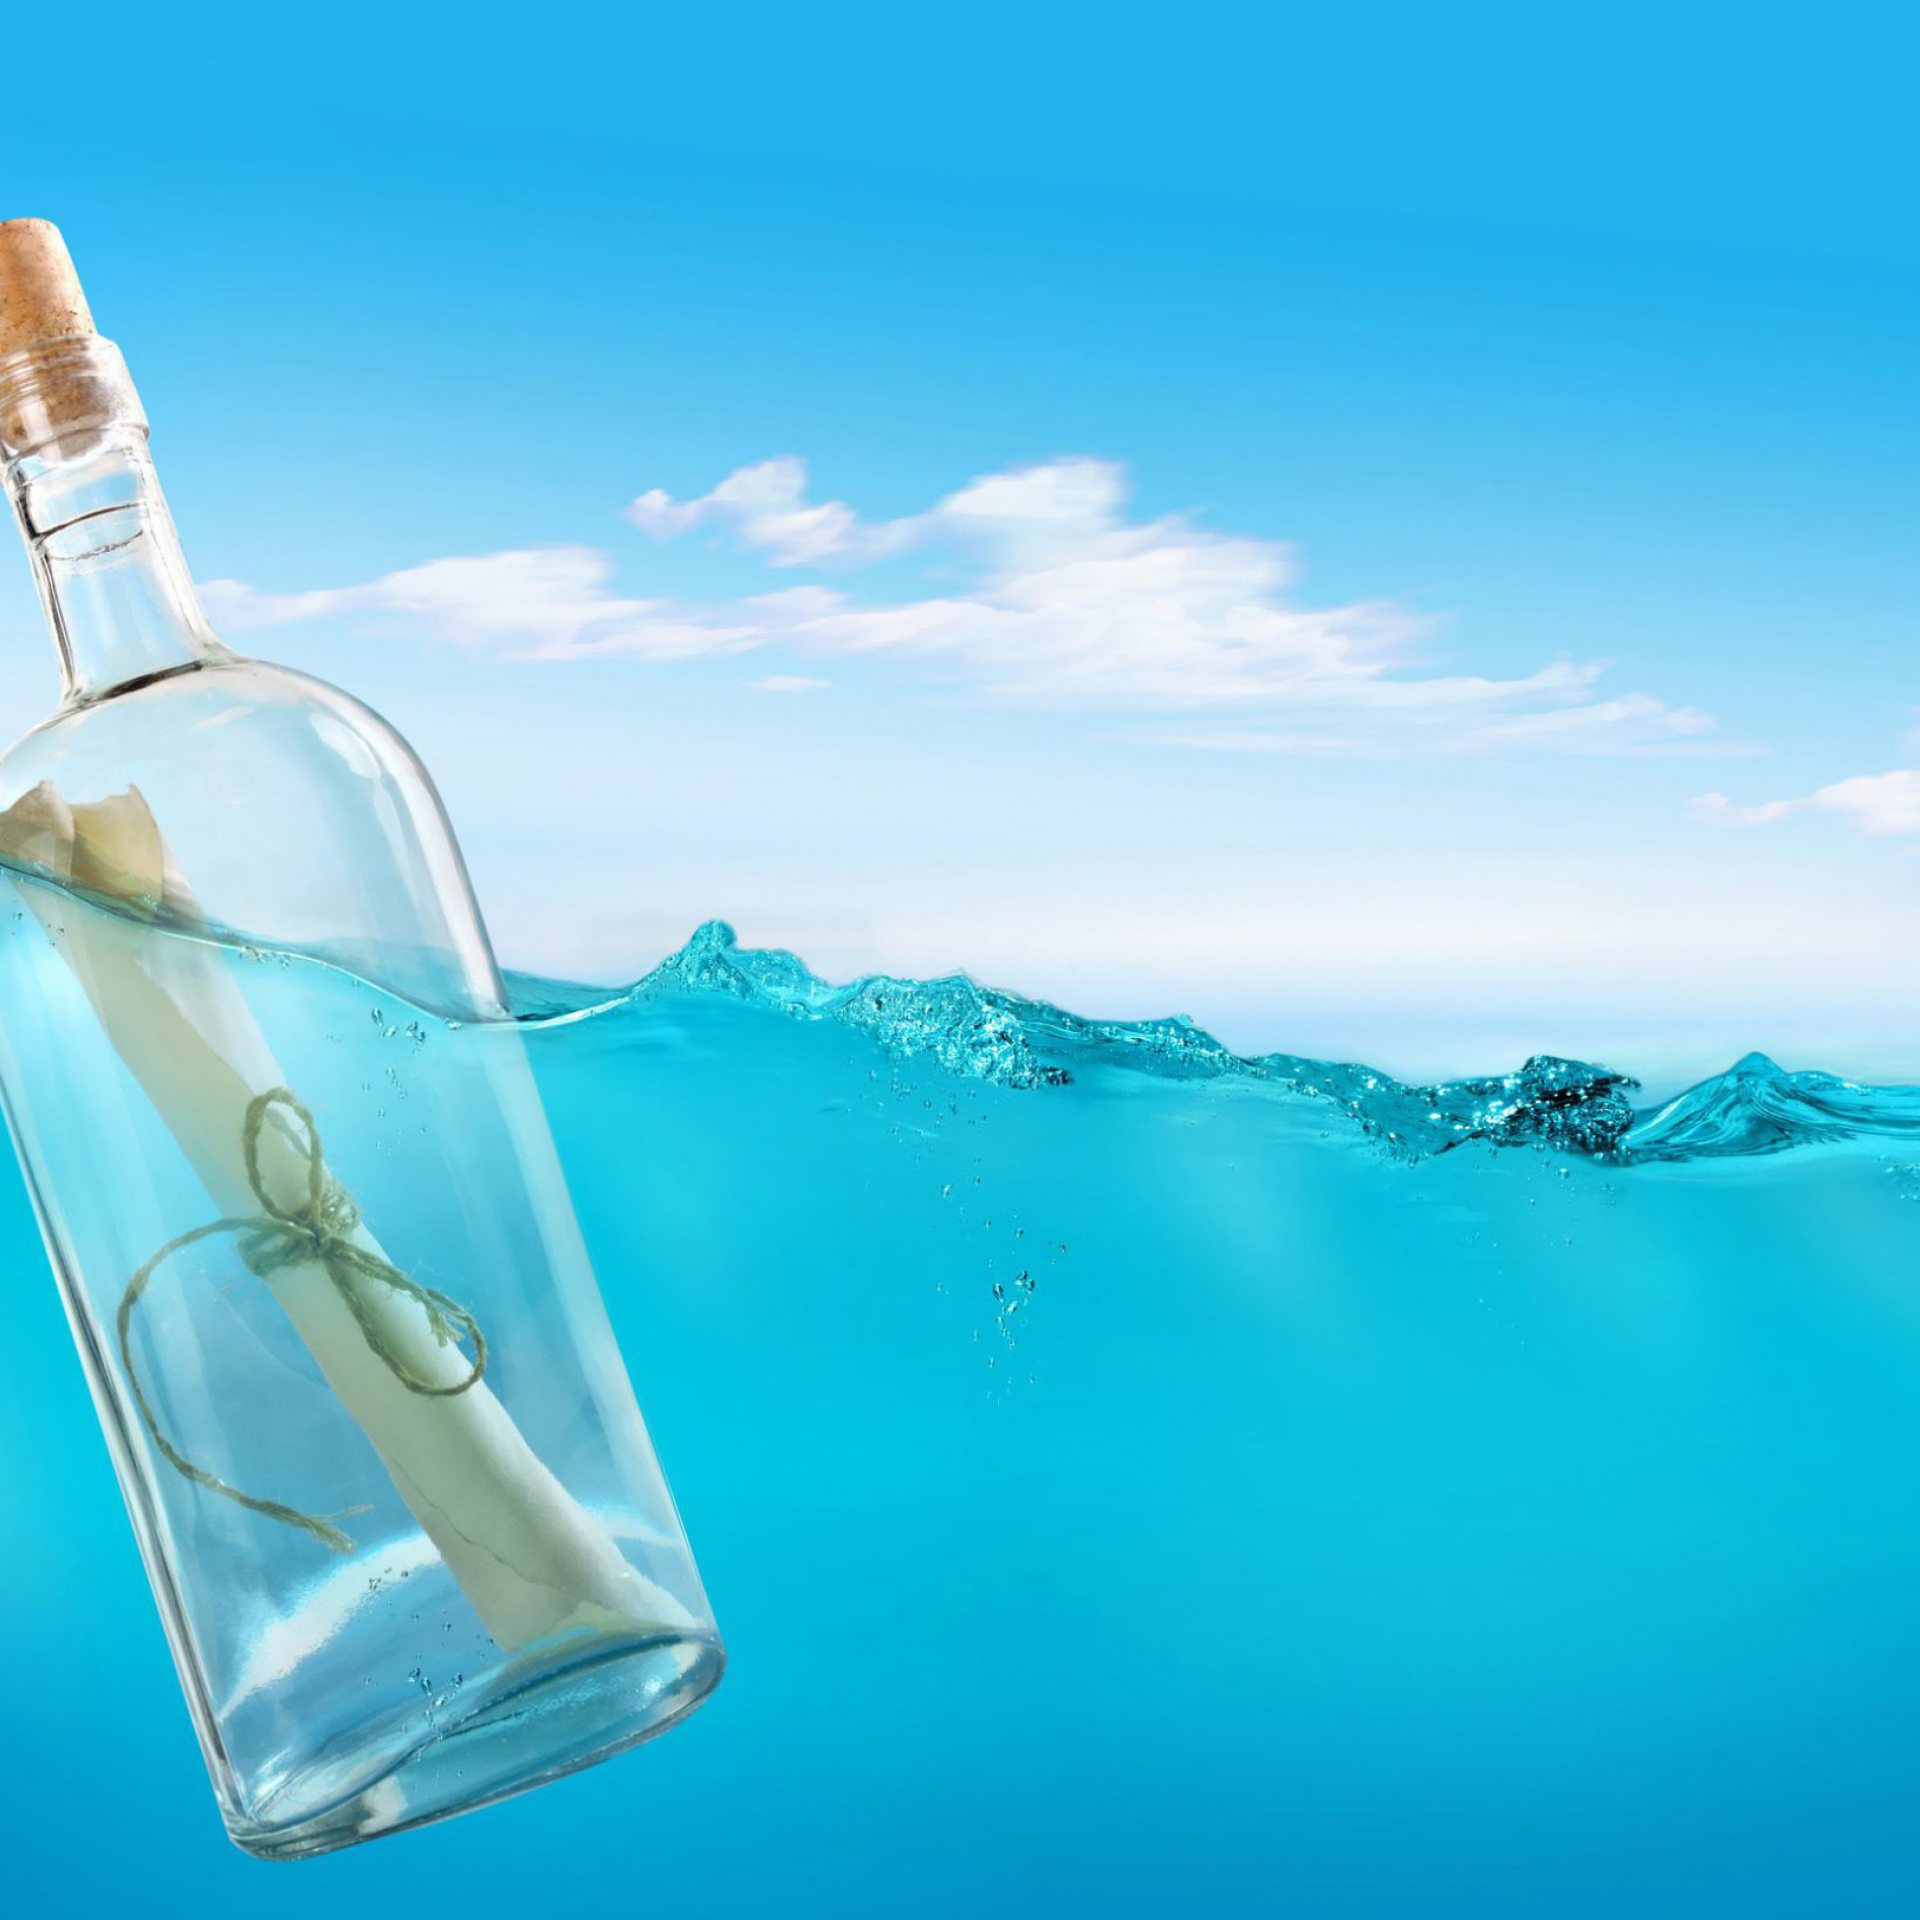 Samsung S6 Edge Wallpaper Hd 1080p Message In A Bottle Hd 1920x1920 Wallpaper Teahub Io